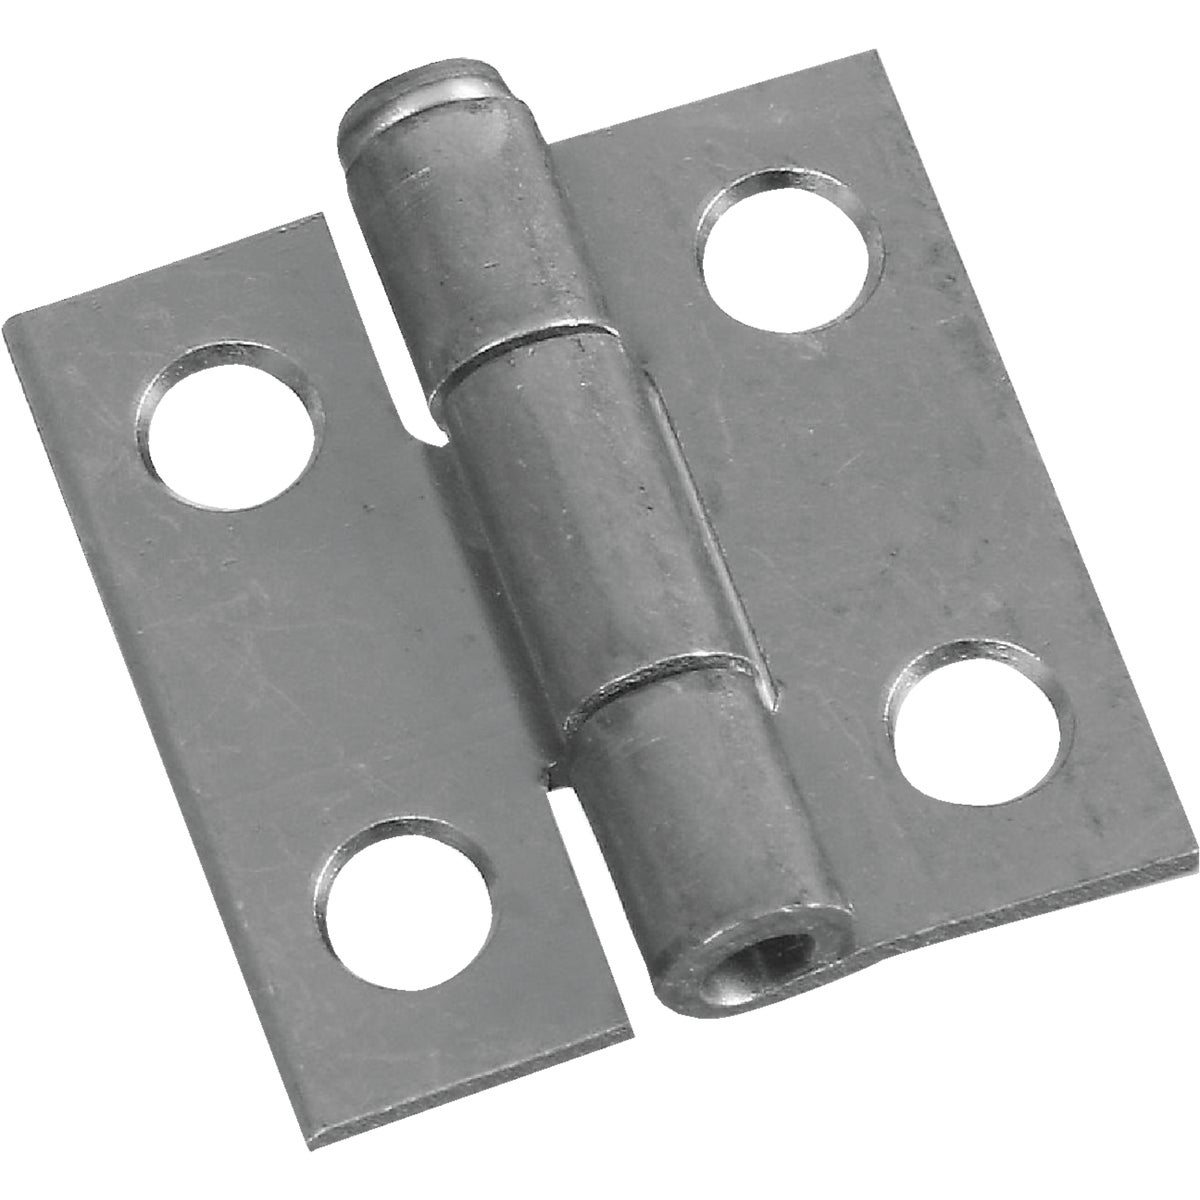 "1"" ZINC PIN HINGE - N141606 by National Mfg Co"